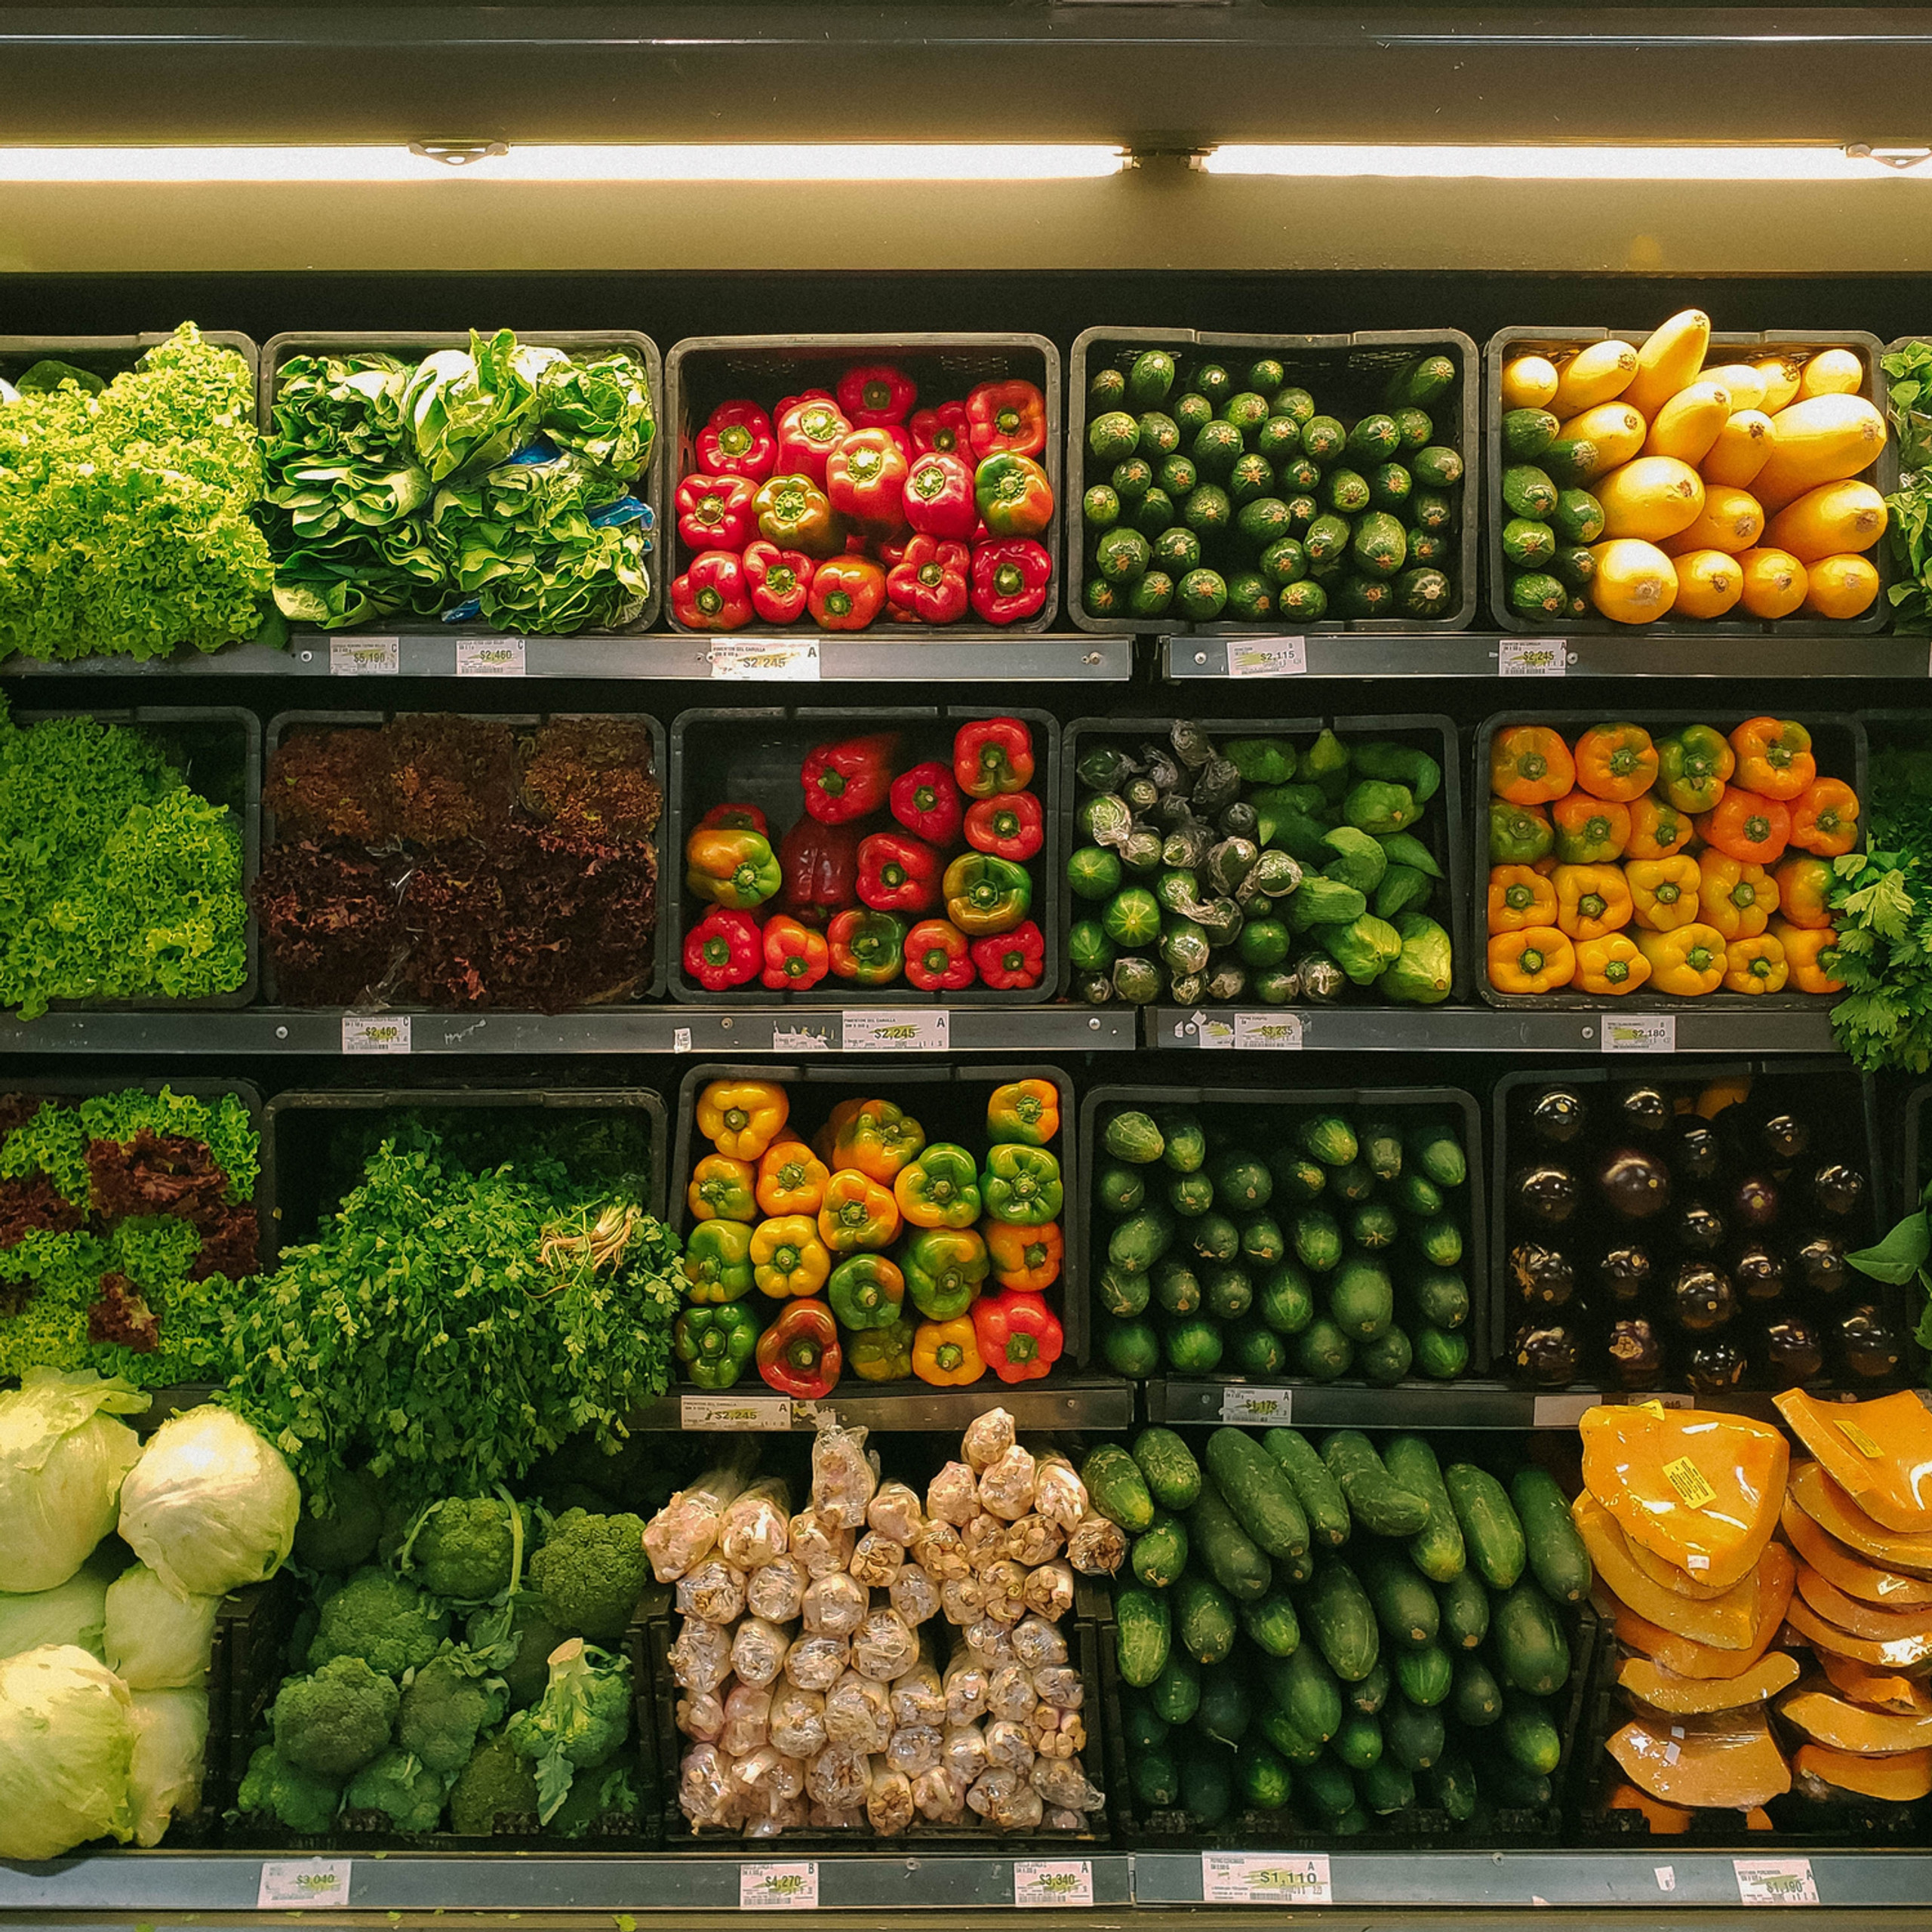 Vegetables in a produce section